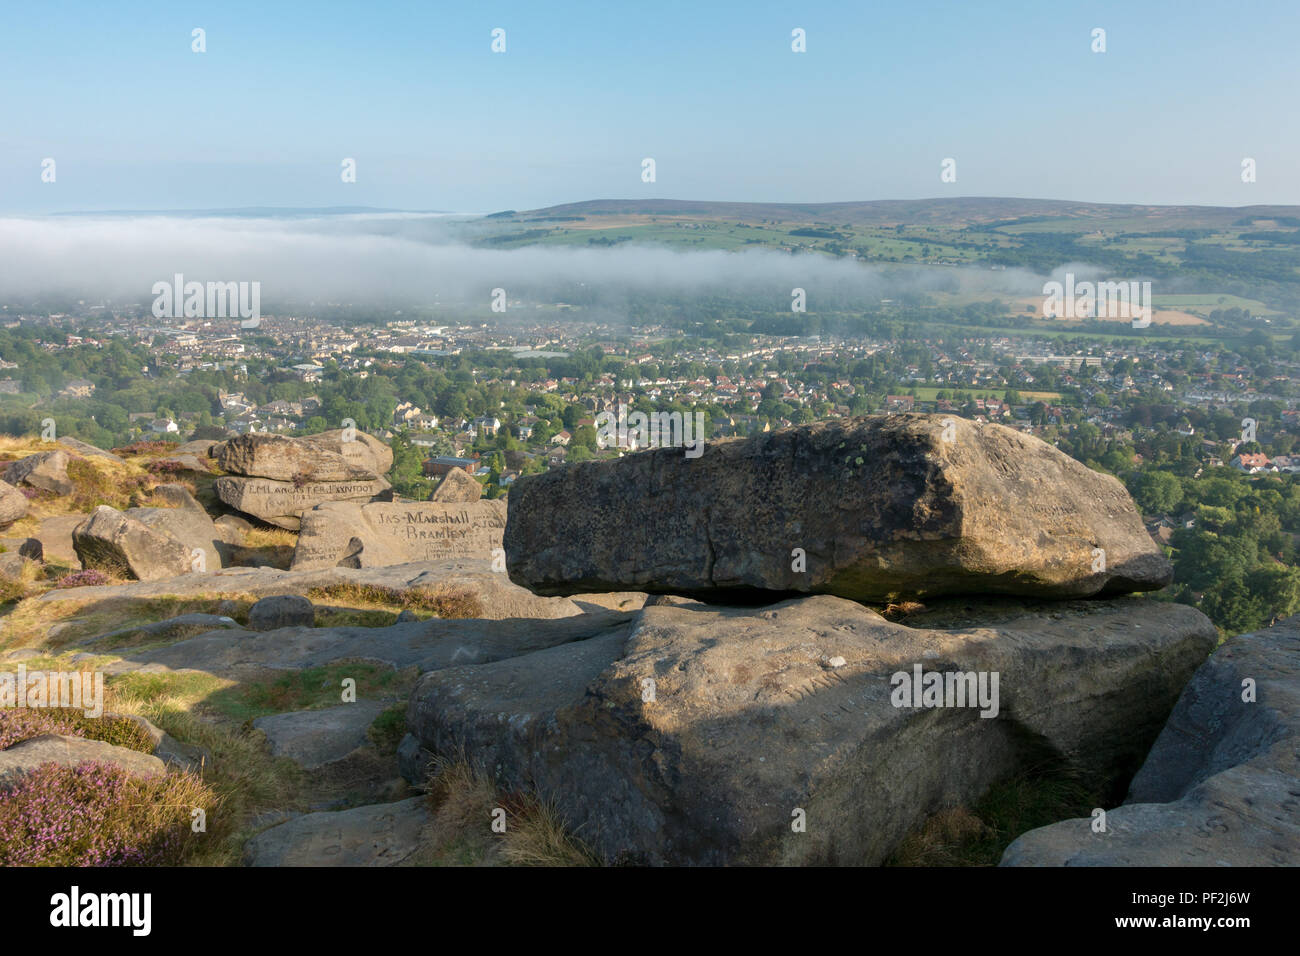 Ilkley town viewed from the Cow and Calf Rocks on Ilkley Moor in hot weather as the early mist burns off - Stock Image